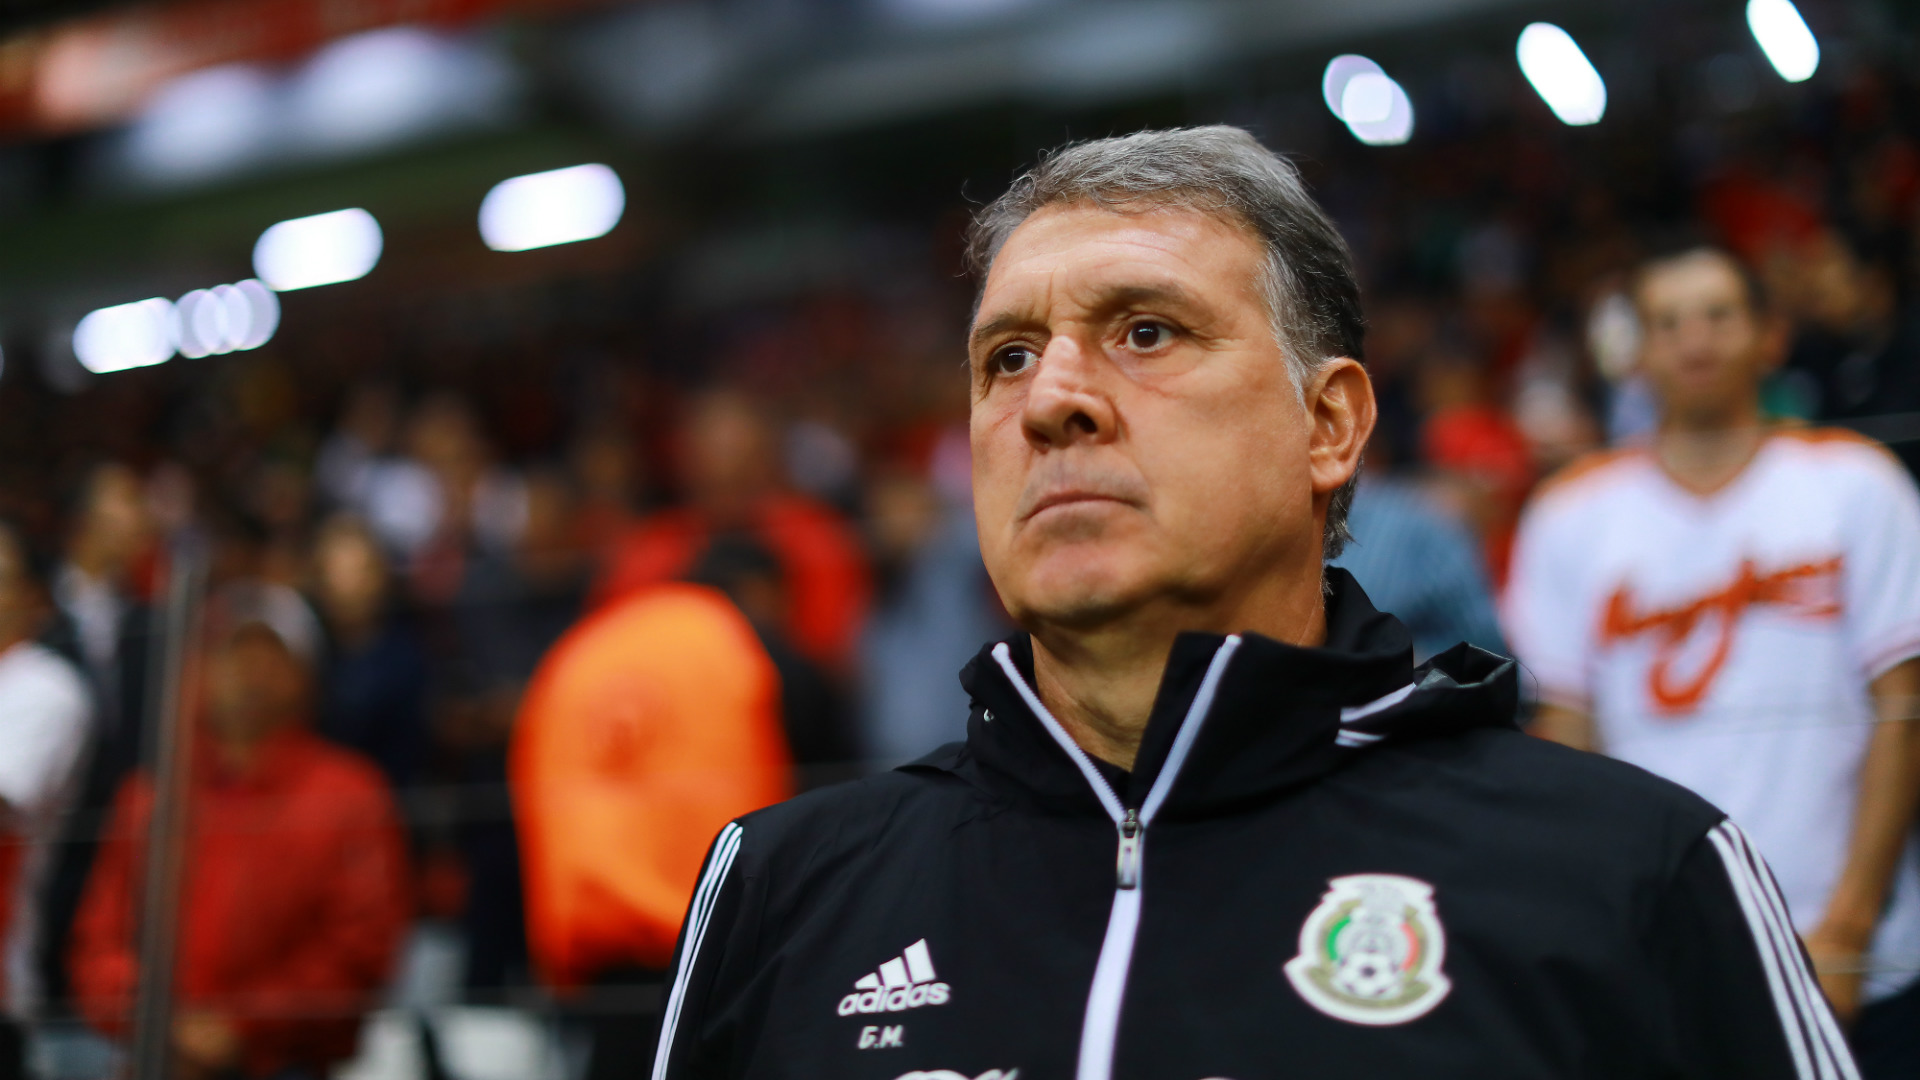 Mexico manager Martino willing to take pay cut during coronavirus crisis